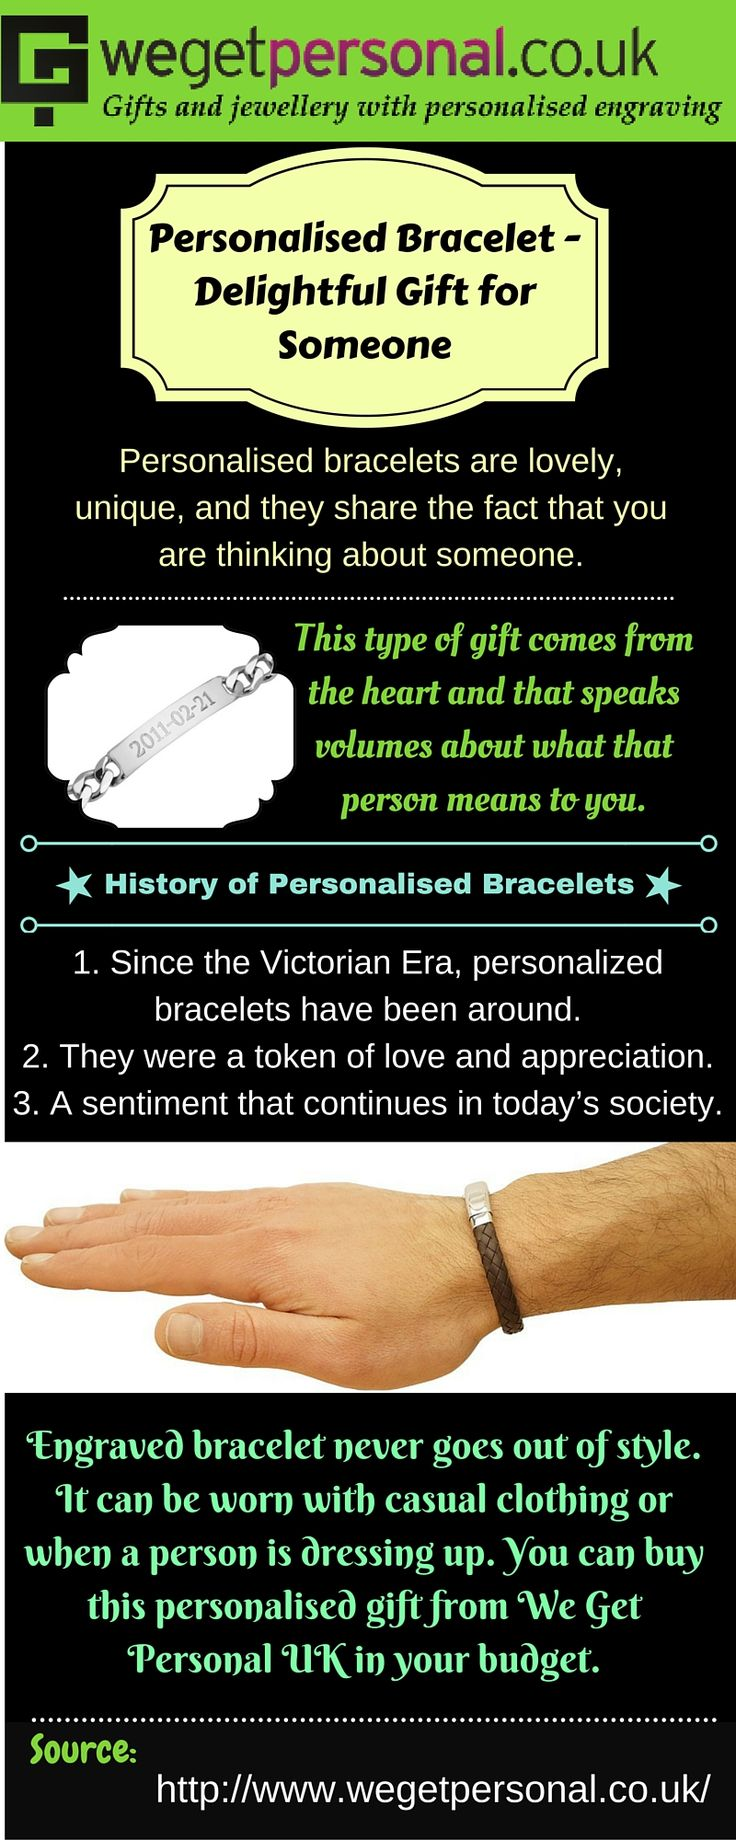 Are you looking for unique gift to your dear ones? Personalised bracelets are attractive gift for anyone. You can buy it from We Get Personal UK inside your budget which can be engraved with your choice of text. You can get to know about the history of personalised bracelet. #personalisedbracelet #engravedbracelet